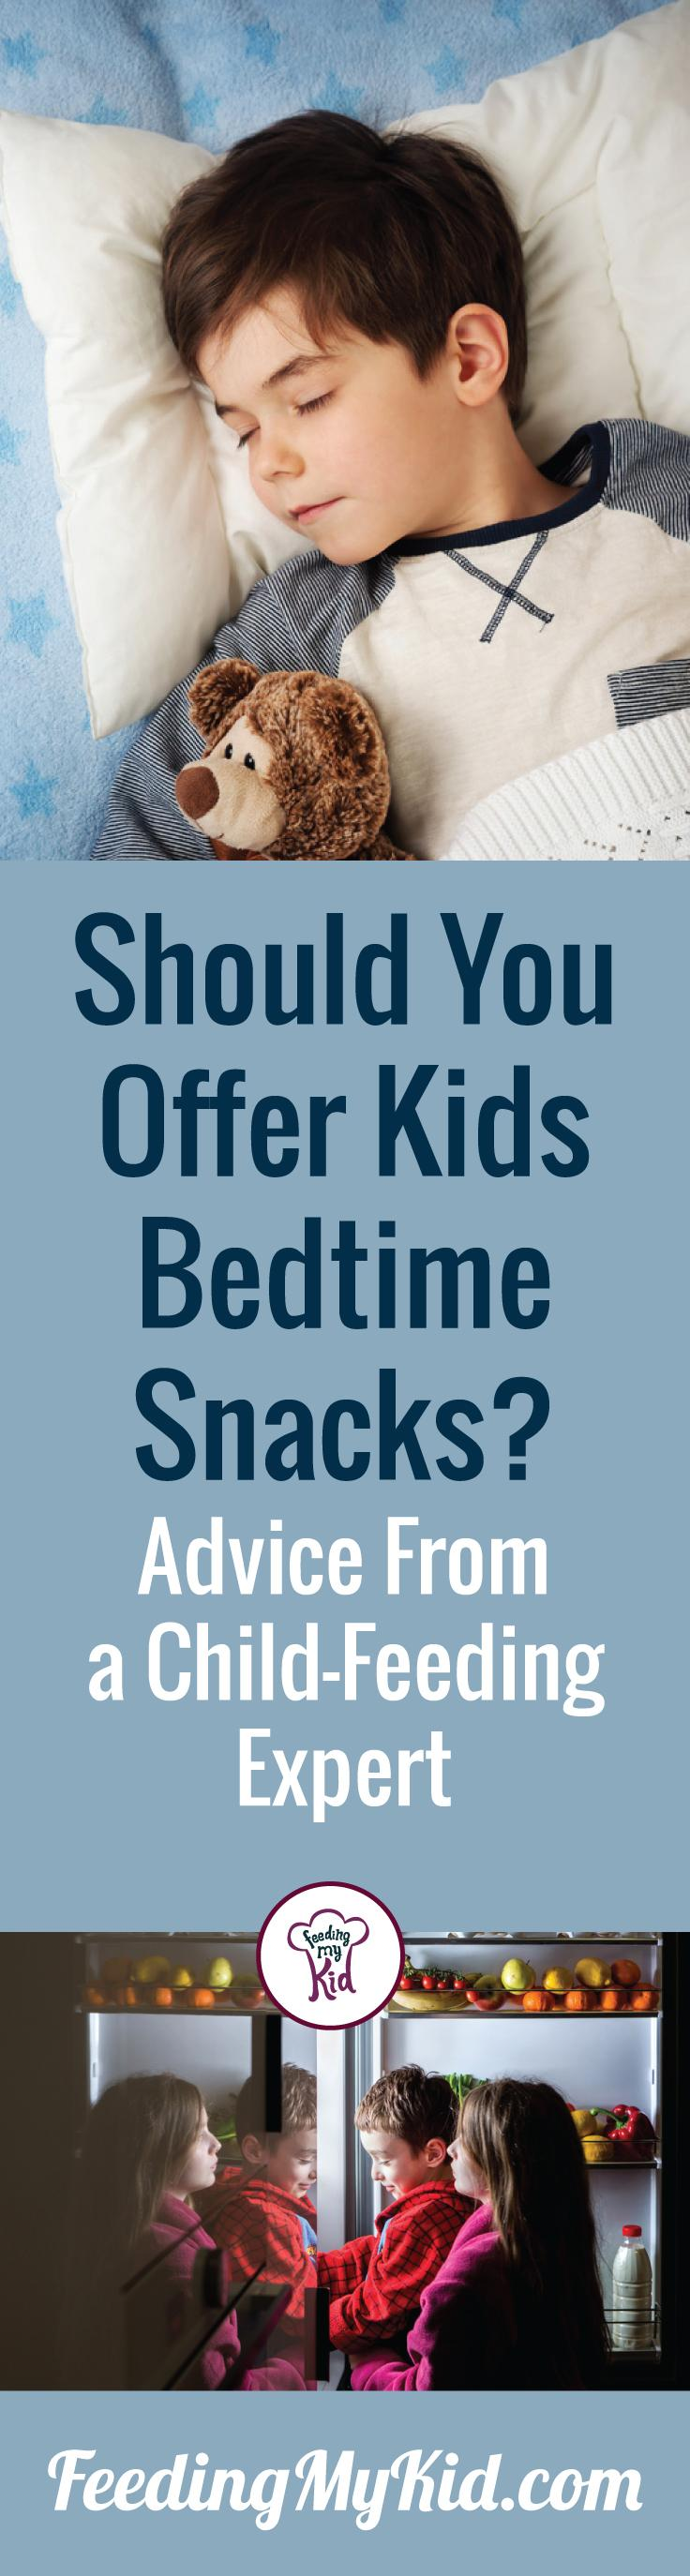 Should you give your kids a late night snack? Find out the does and don'ts from a feeding-expert. Feeding My Kid is a filled with all the information you need about how to raise your kids, from healthy tips to nutritious recipes. #snacktime #latenightsnacks #dietitian #FeedingMyKid